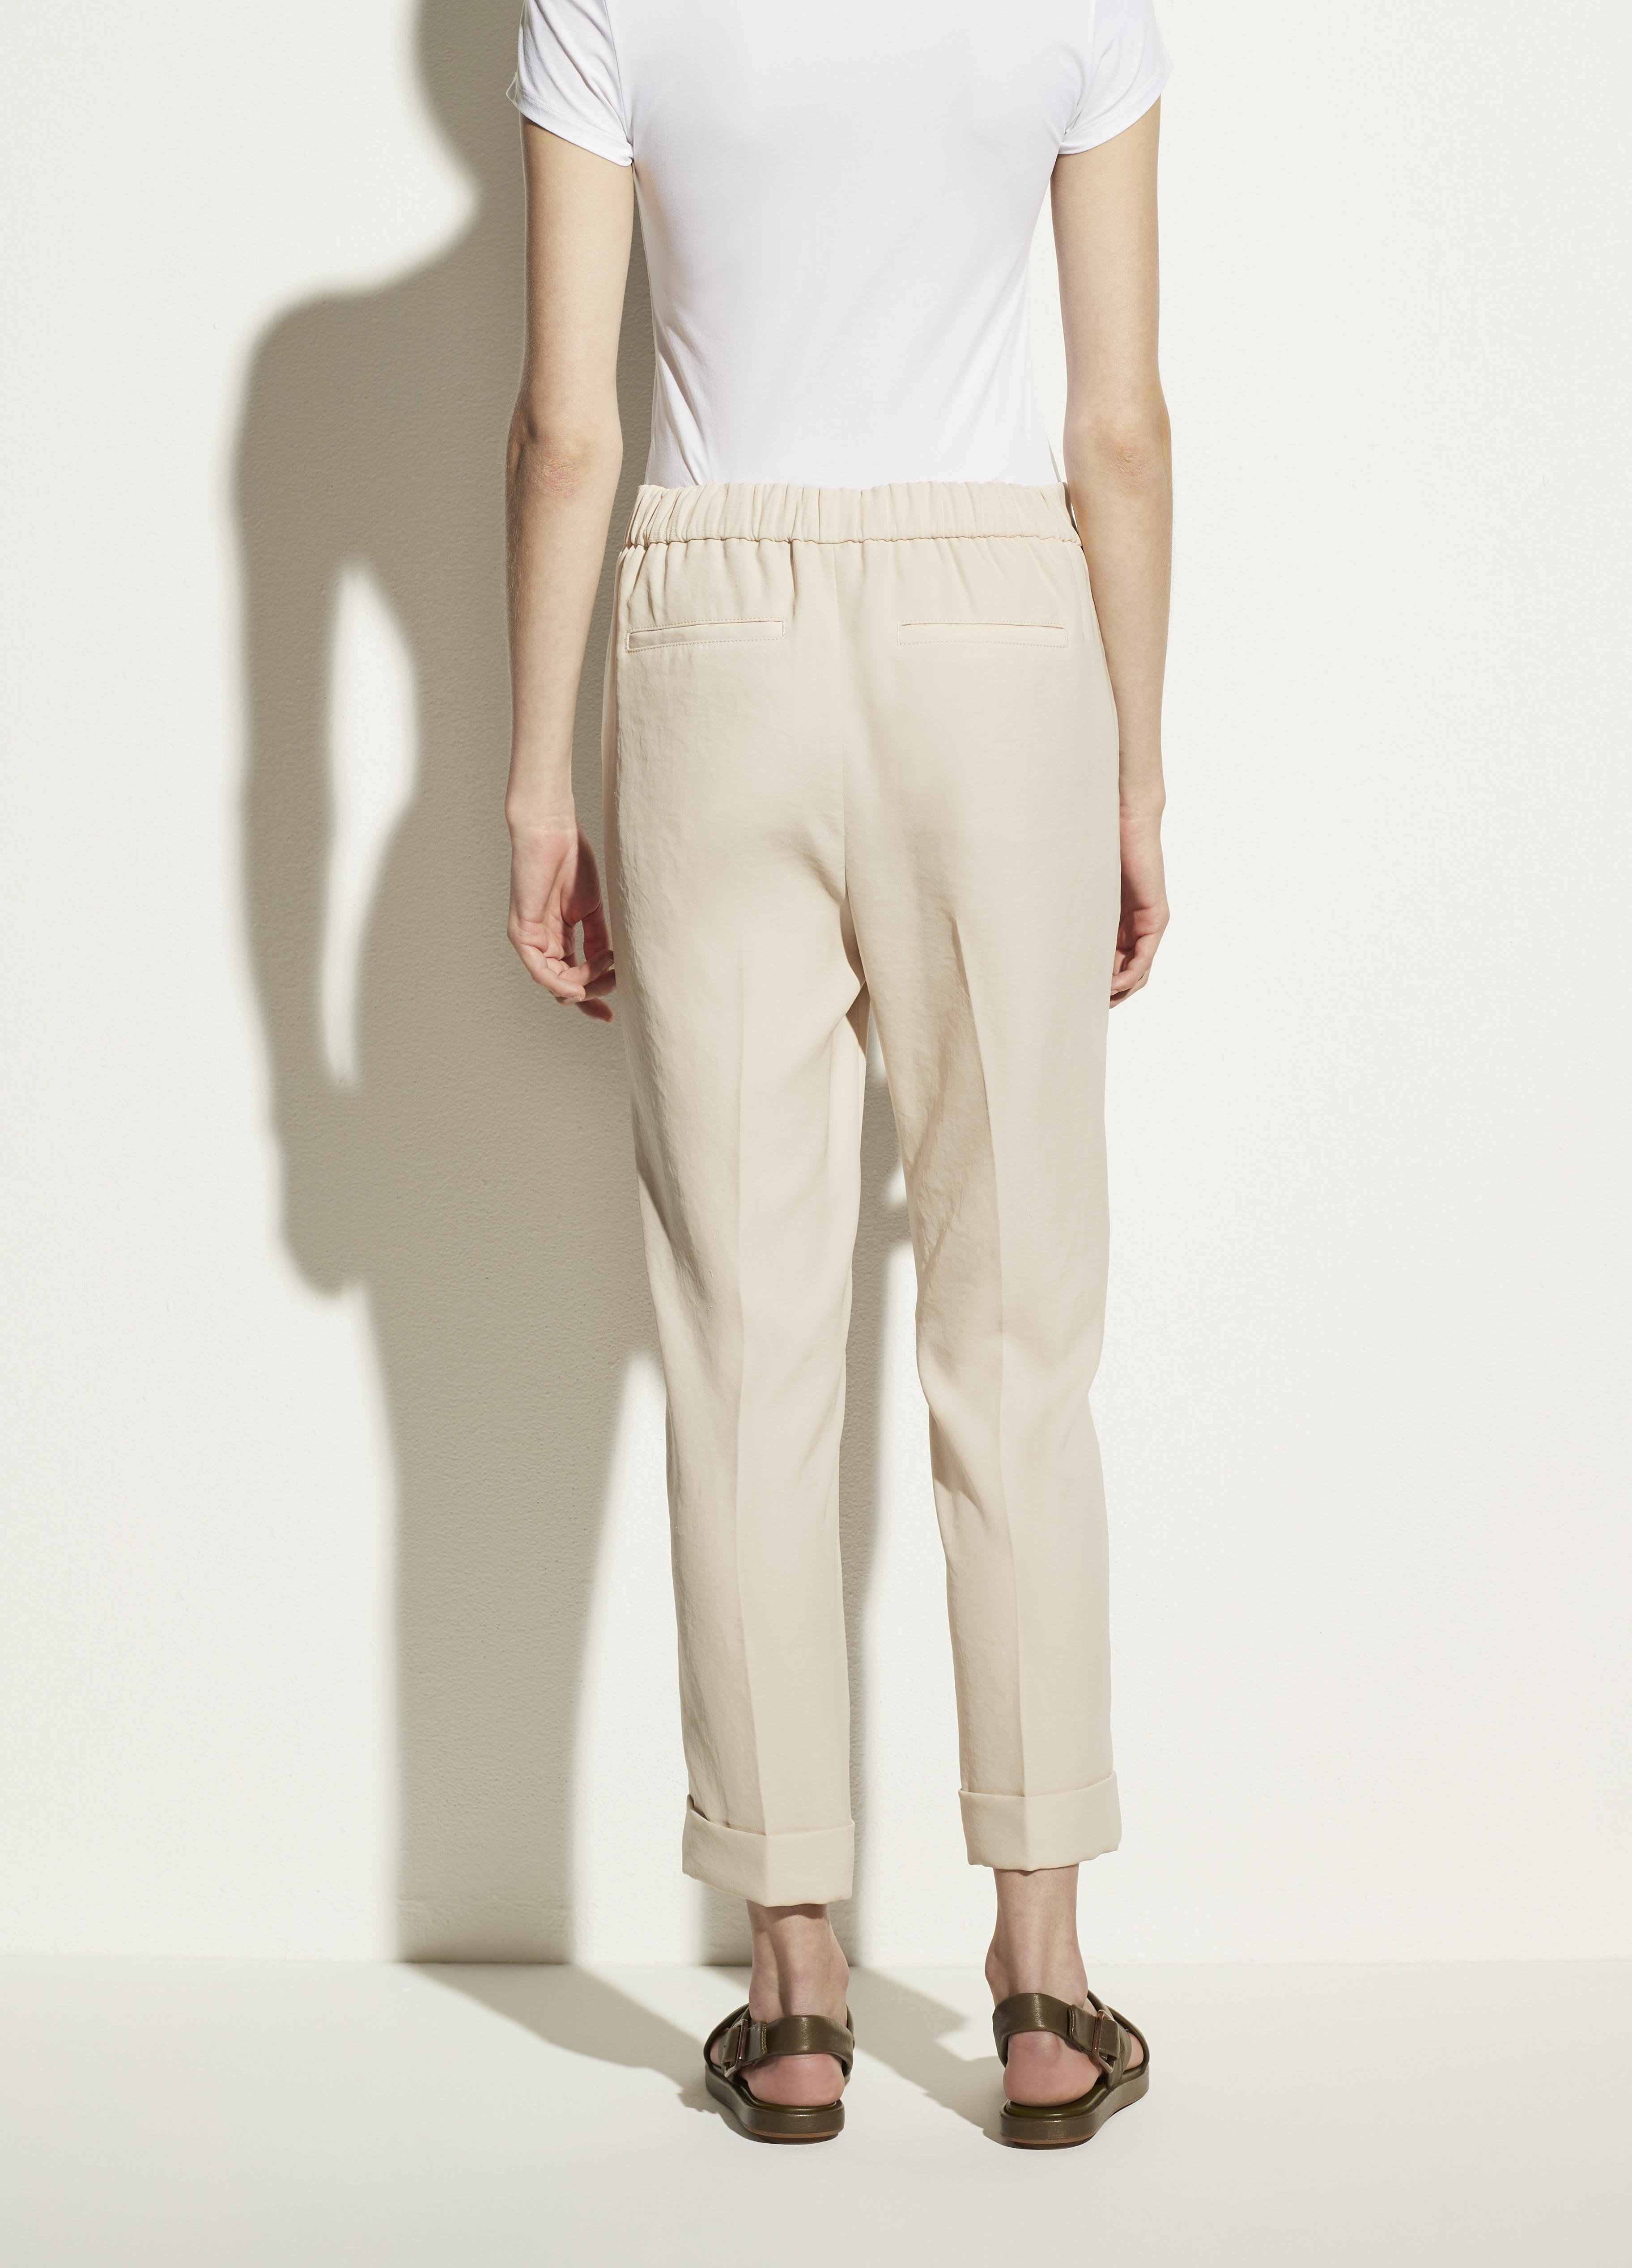 Cuffed Tapered Pull On Pant 3